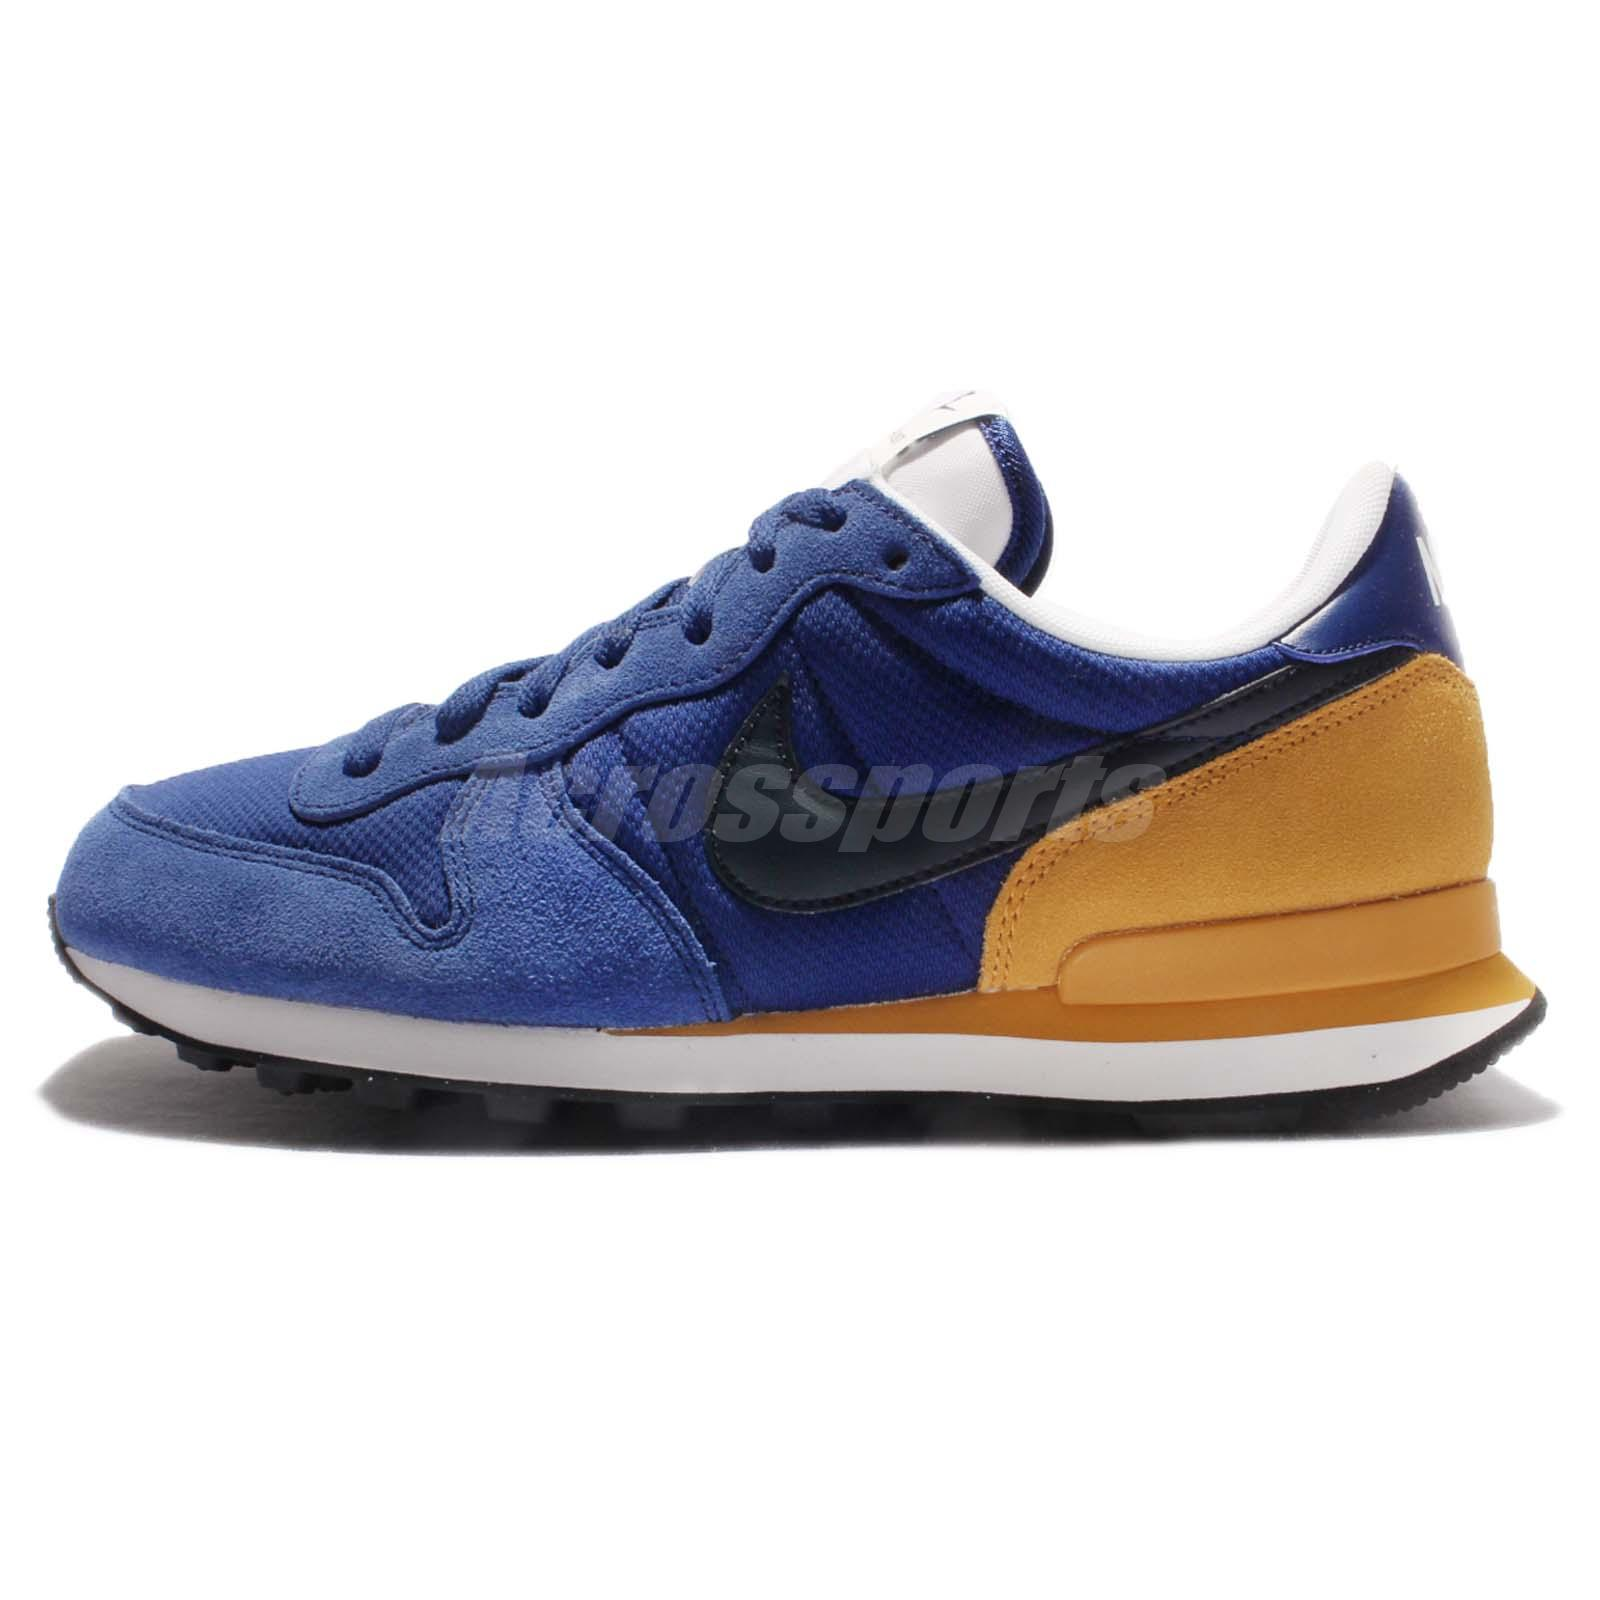 huge discount 9e631 62bb2 ... Nike Internationalist Blue Yellow Men Suede Running Shoes Sneakers  828041-400 ...